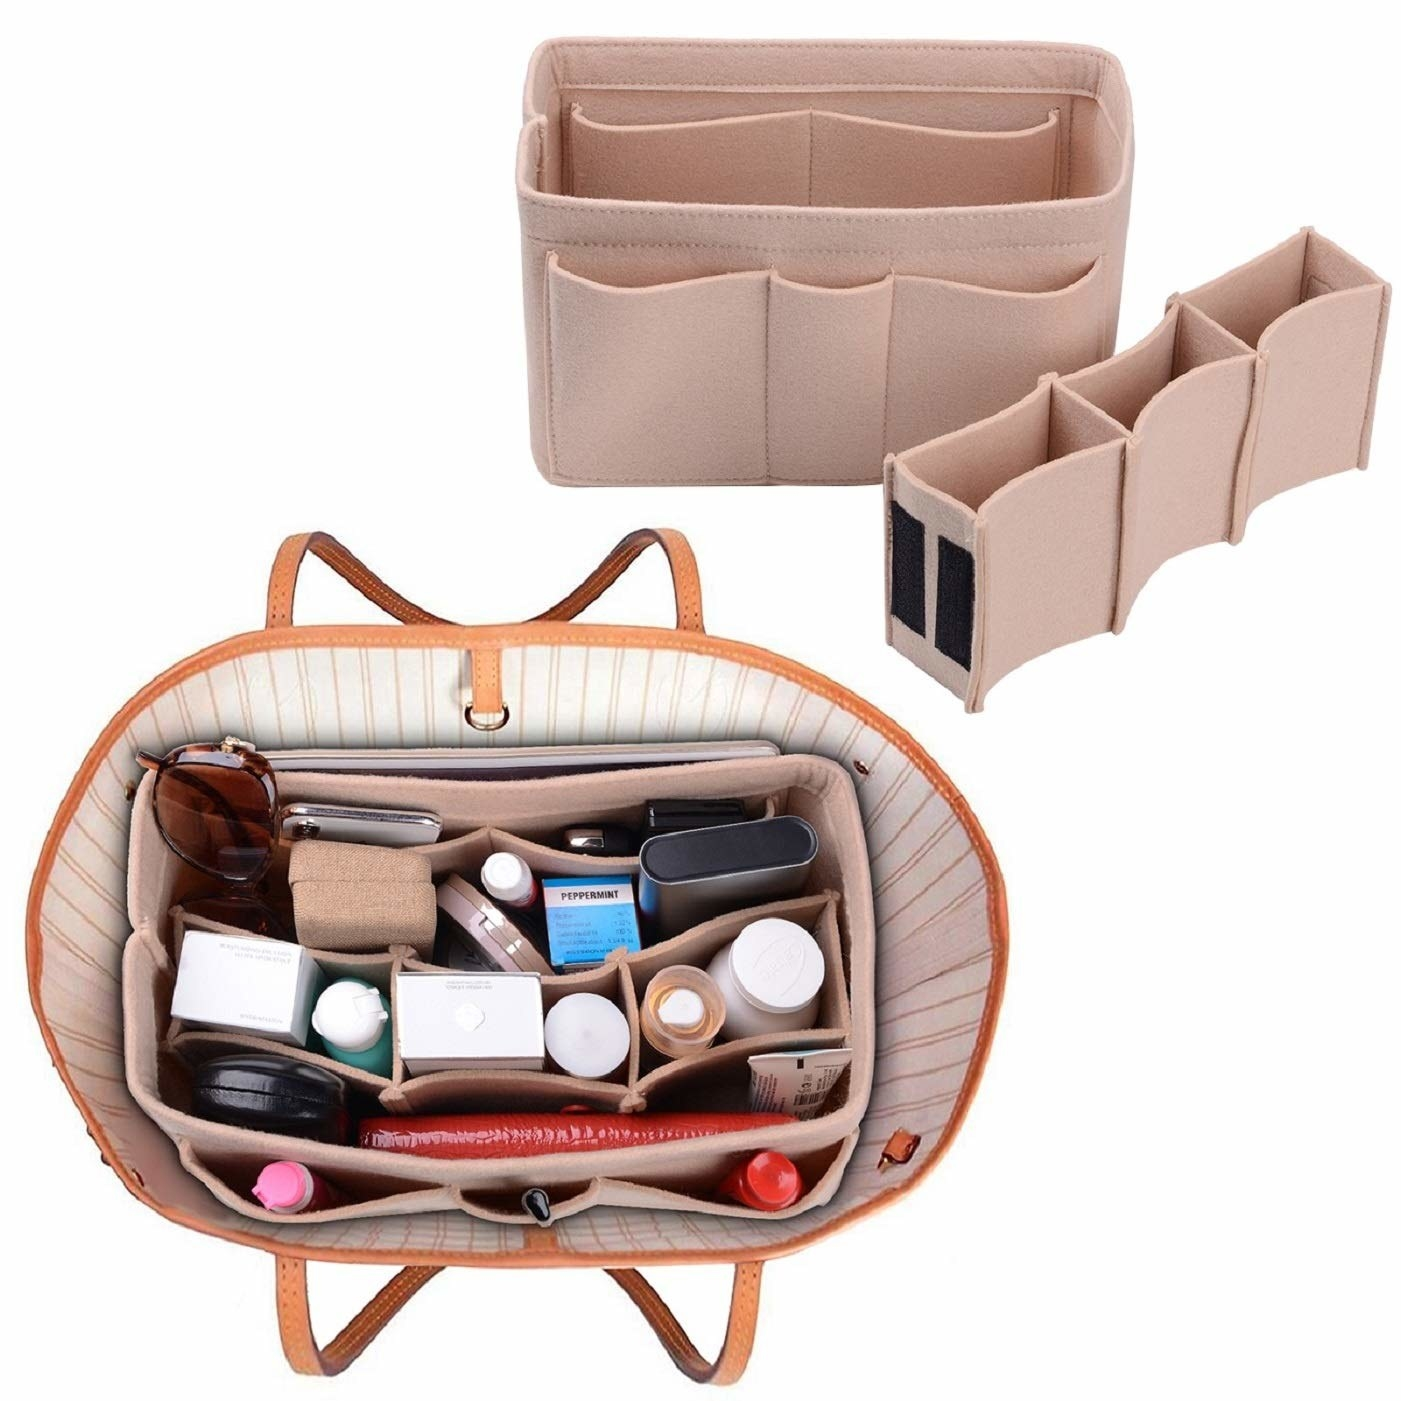 The felt organizer in pink from the front and side, and also shown organizing items in a tote